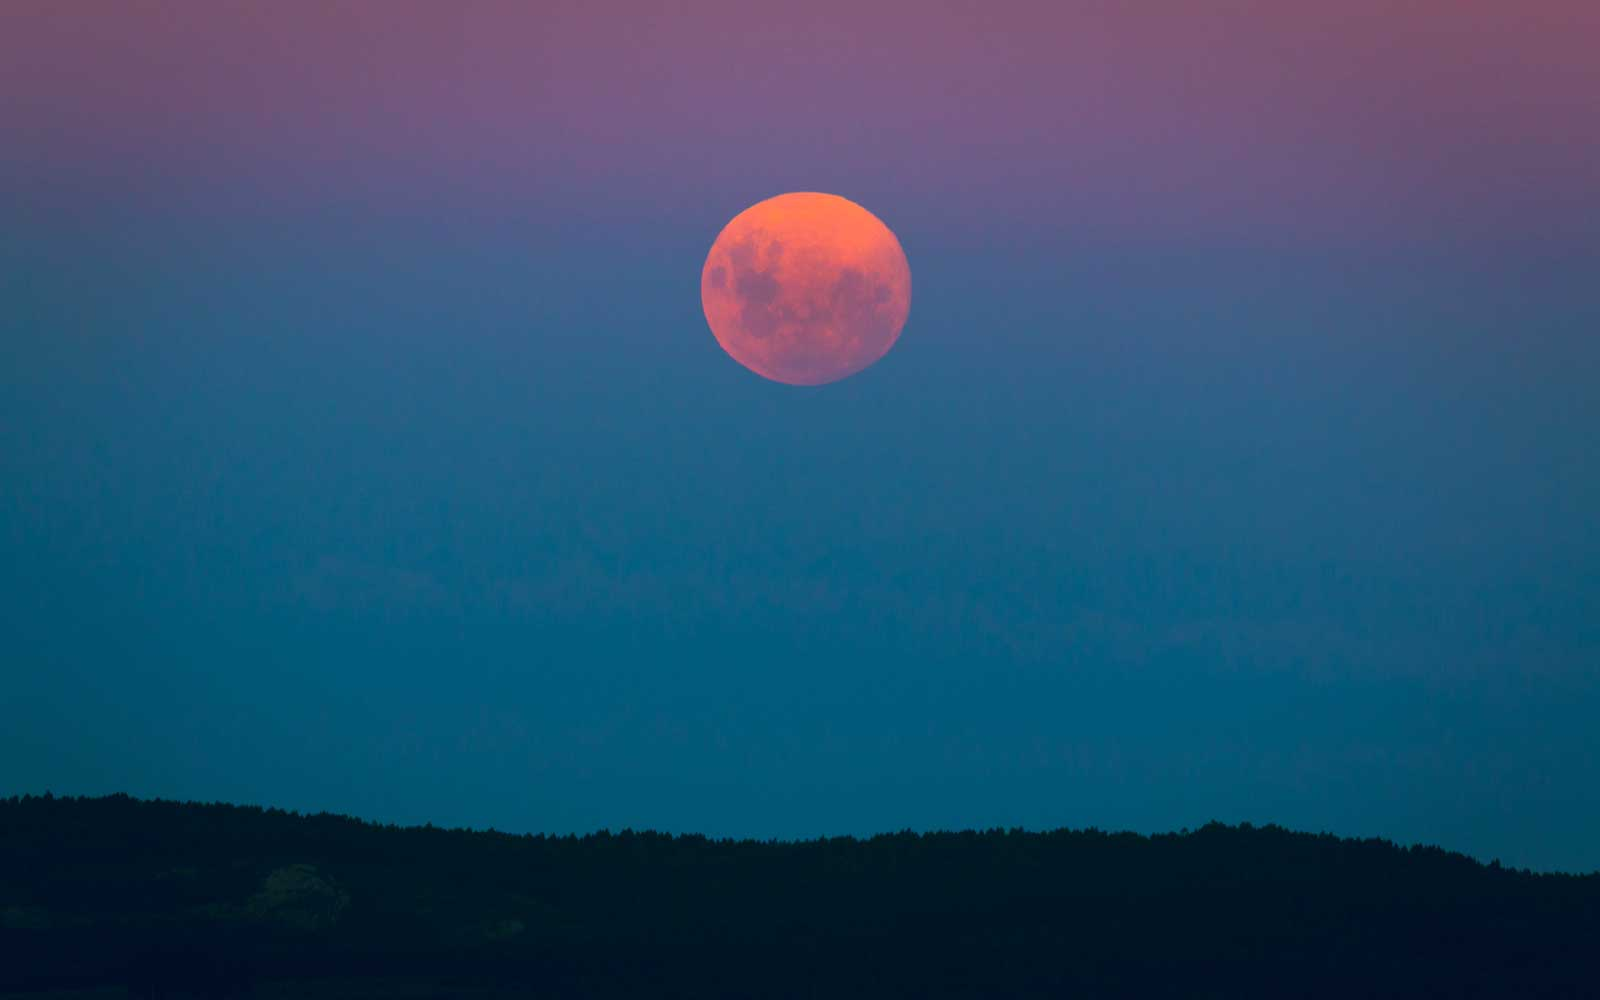 Full moon rising over a hill, Rocha, Uruguay